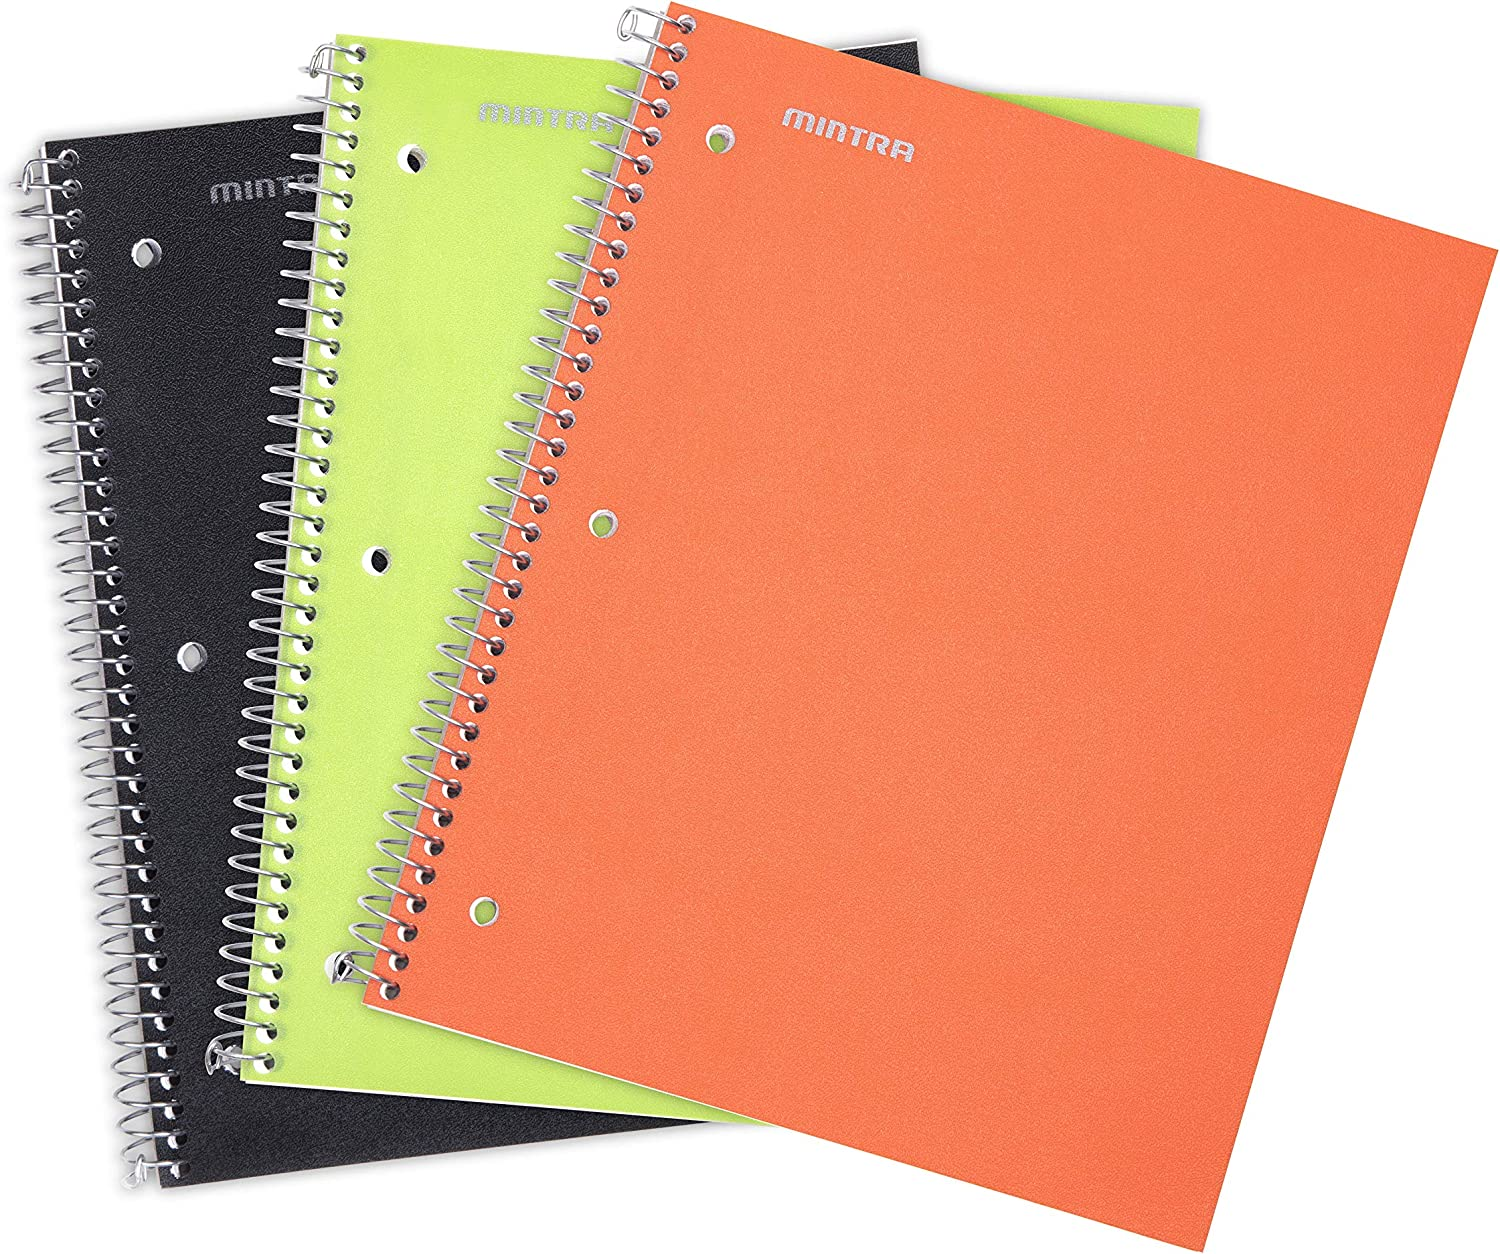 Mintra Office Durable Spiral Notebooks, 1 Subject, 100 Sheets, Poly Pocket, Moisture Resistant Cover, School, Office, Business, Professional (Black, Orange, Green Wide Ruled 3pk)